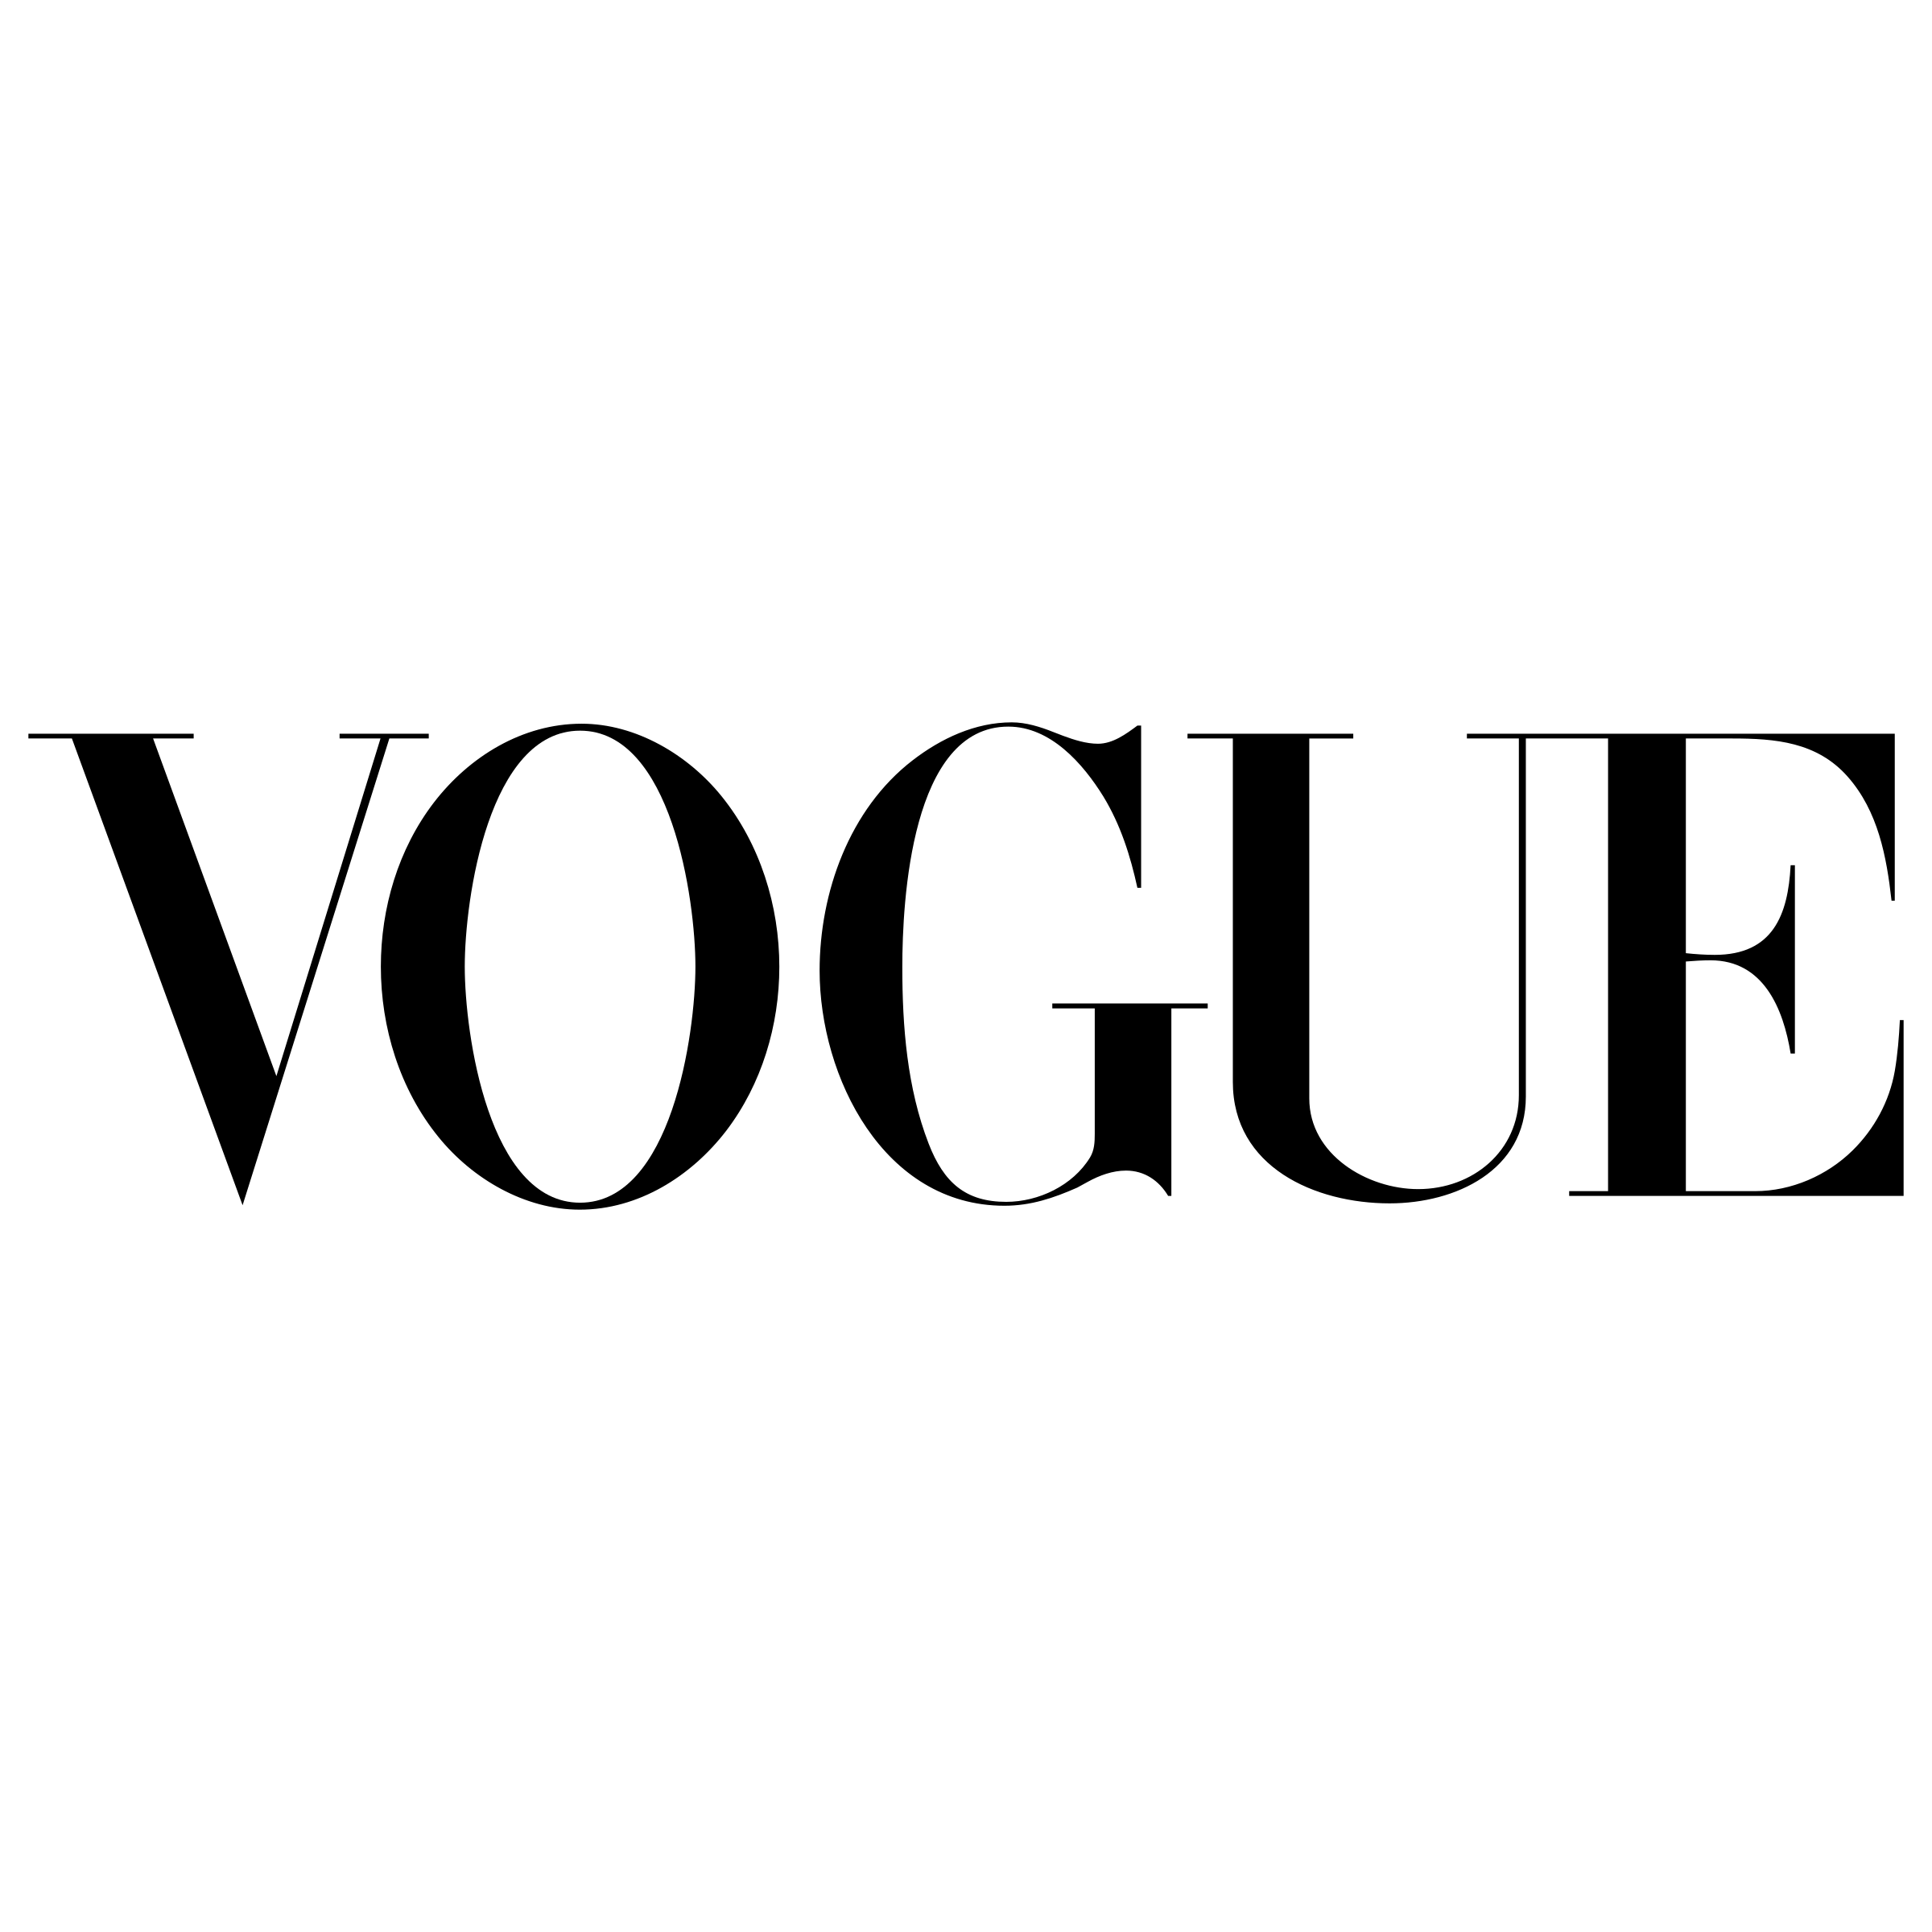 vogue-logo-png-transparent.png